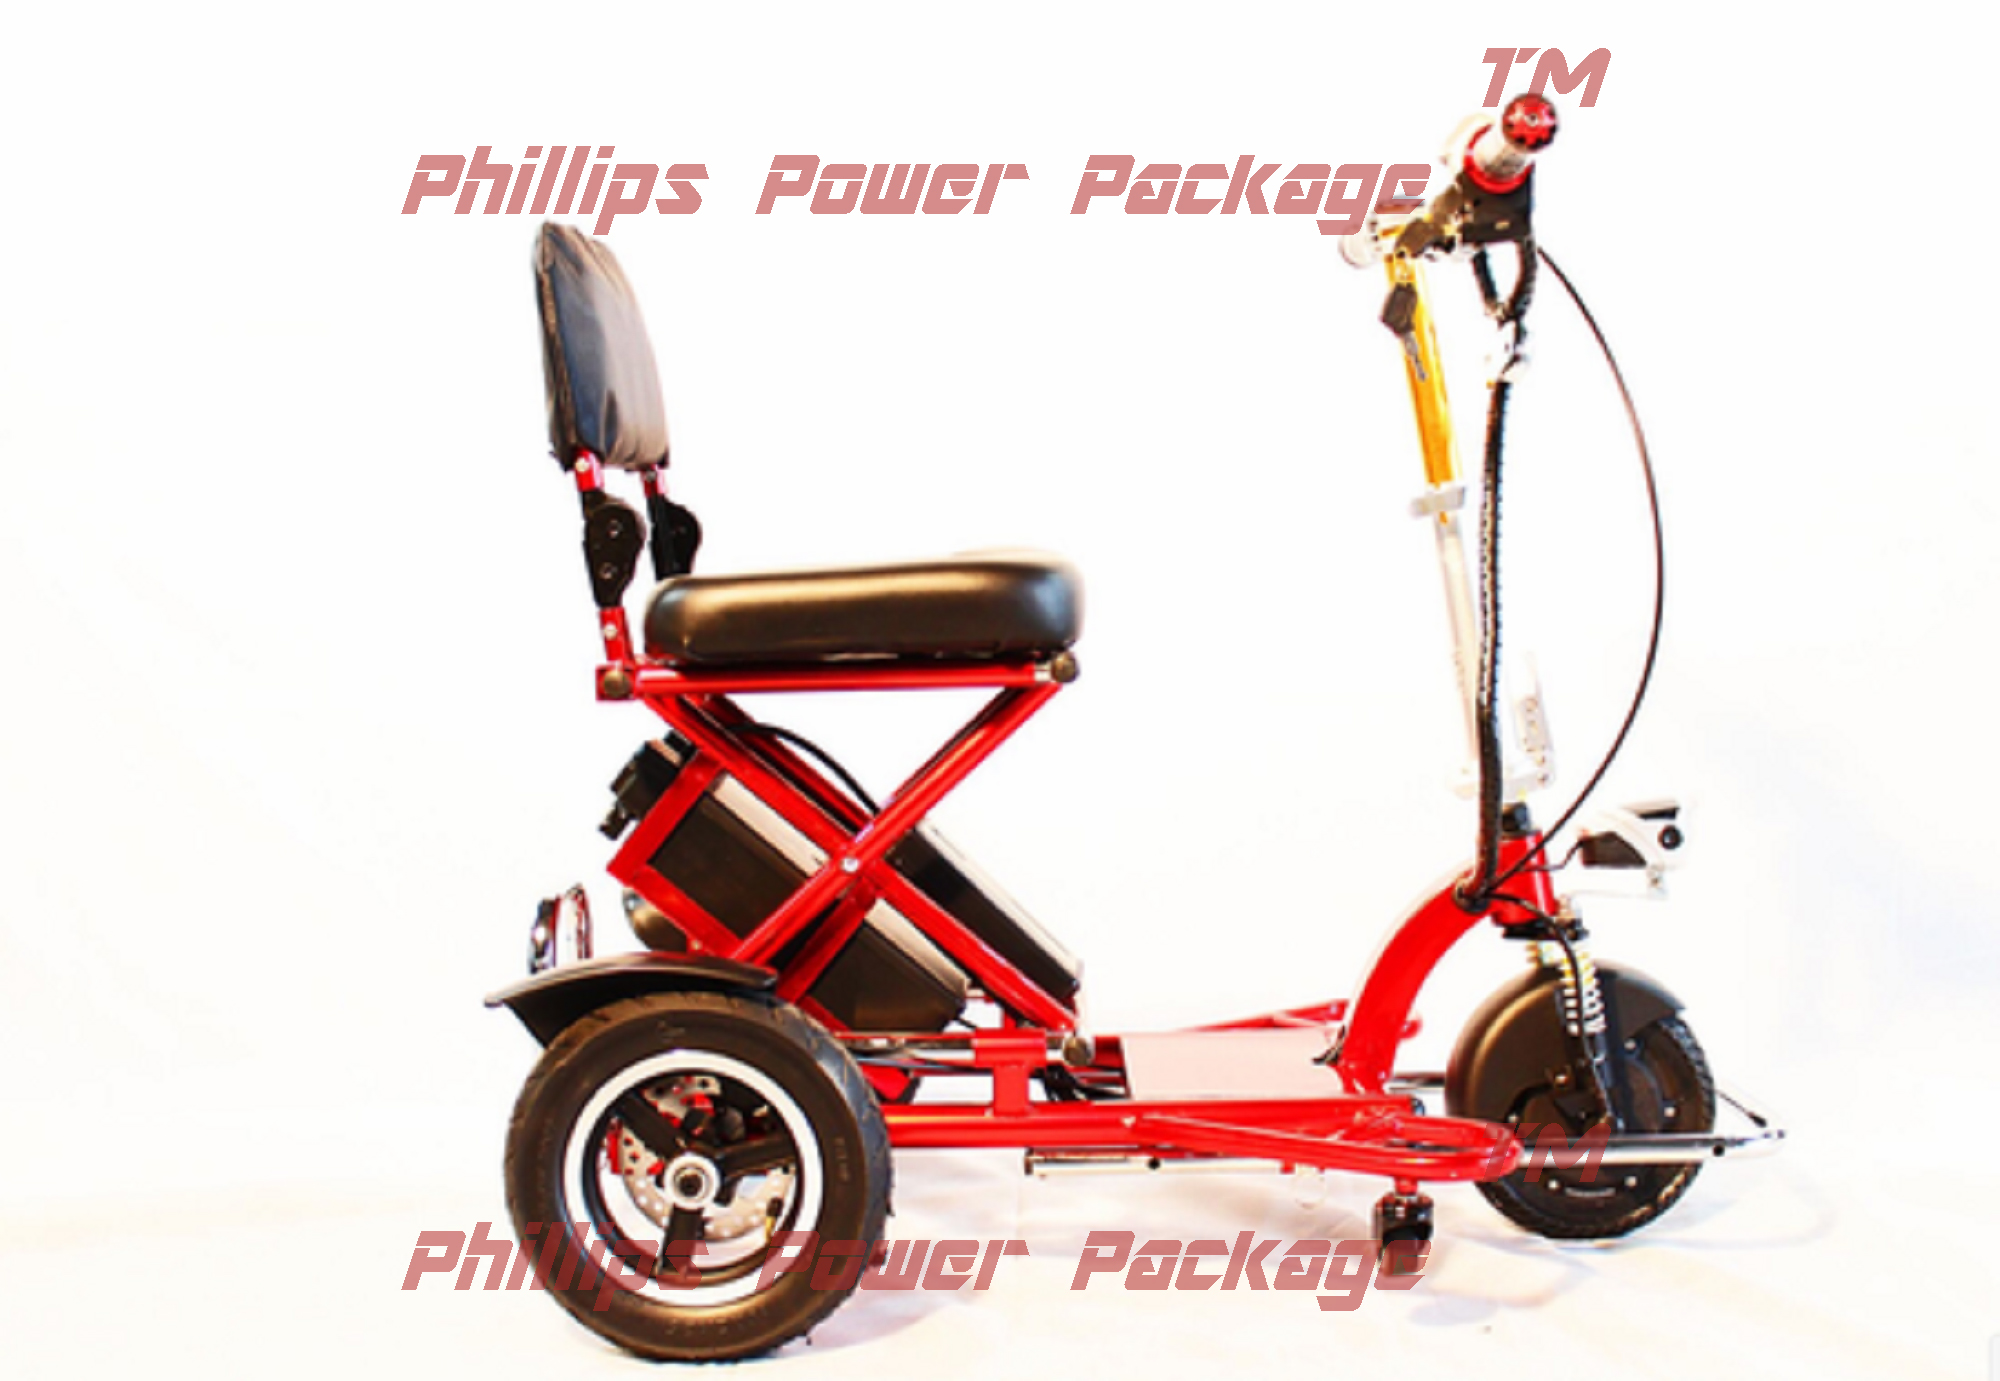 Enhance Mobility Triaxe Sport Portable Folding Scooter 3-Wheel Red PHILLIPS POWER PACKAGE... by